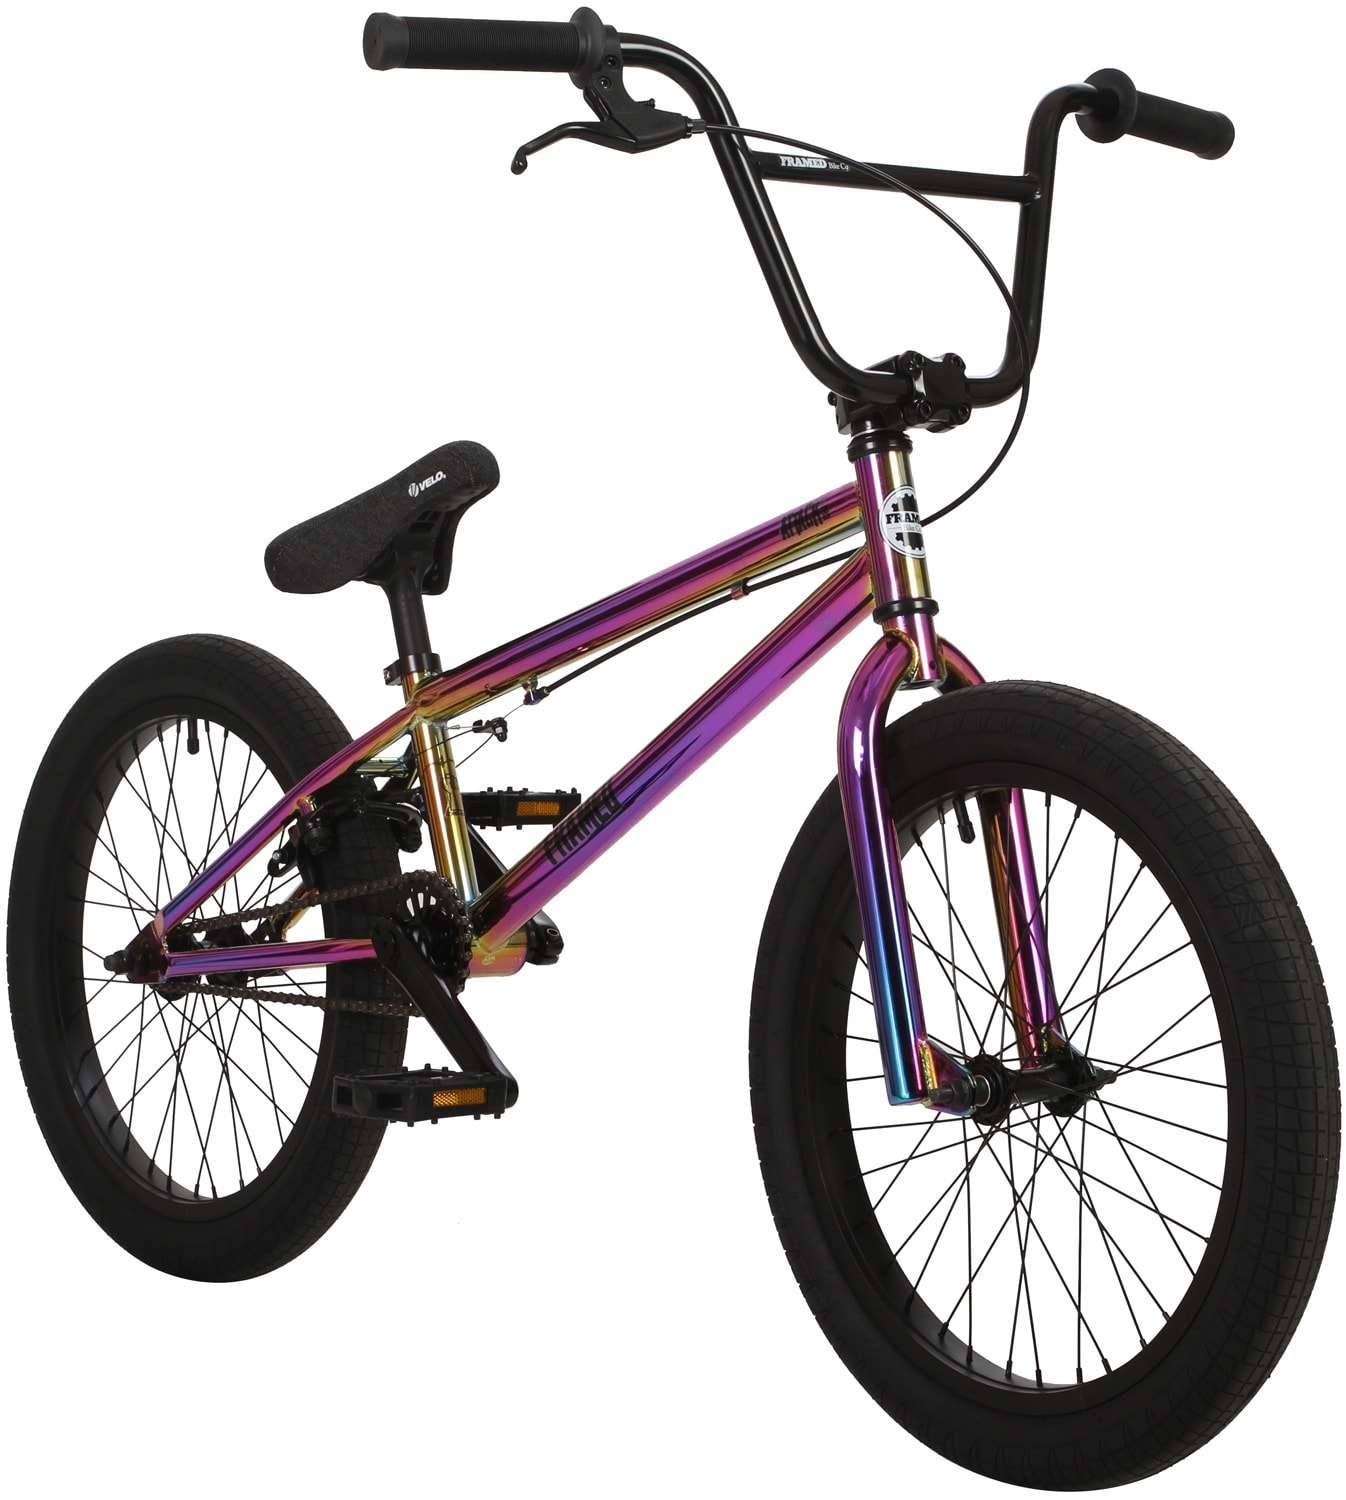 framed attack pro bmx bike 2017